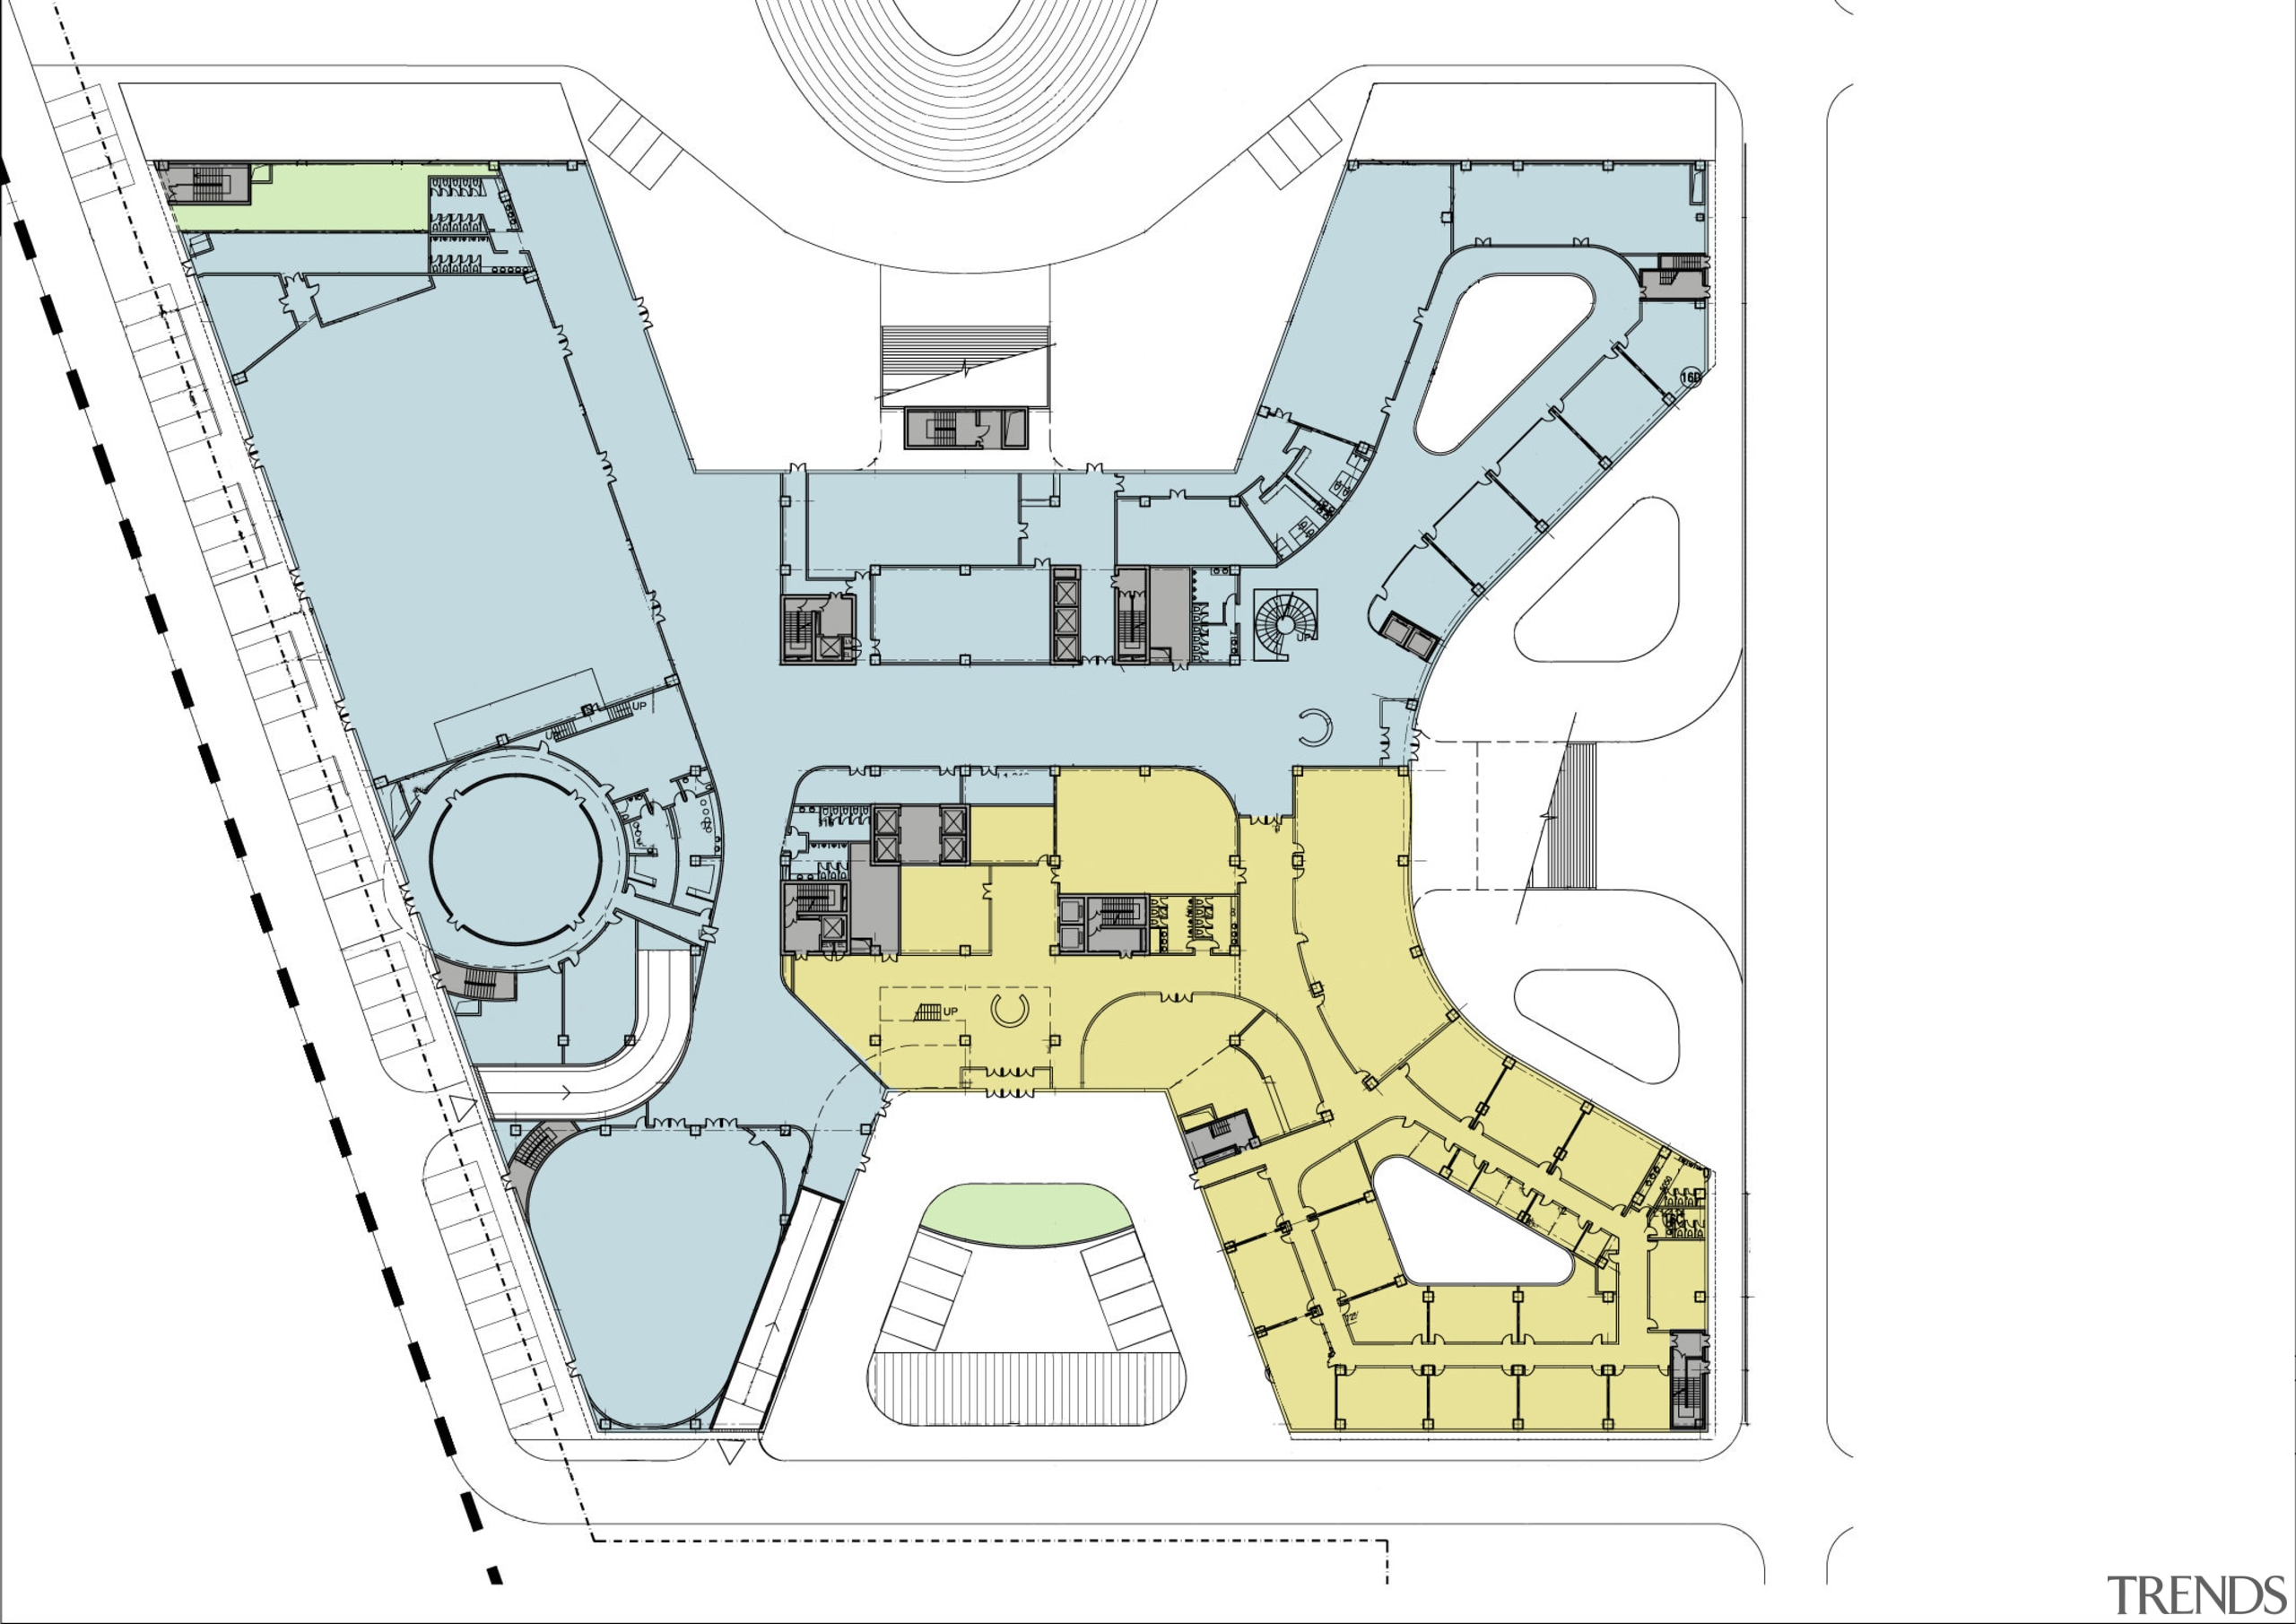 Plan of the Xian Jiaotong-Liverpool University Administration Building architecture, area, design, diagram, floor plan, font, line, plan, product design, structure, urban design, white